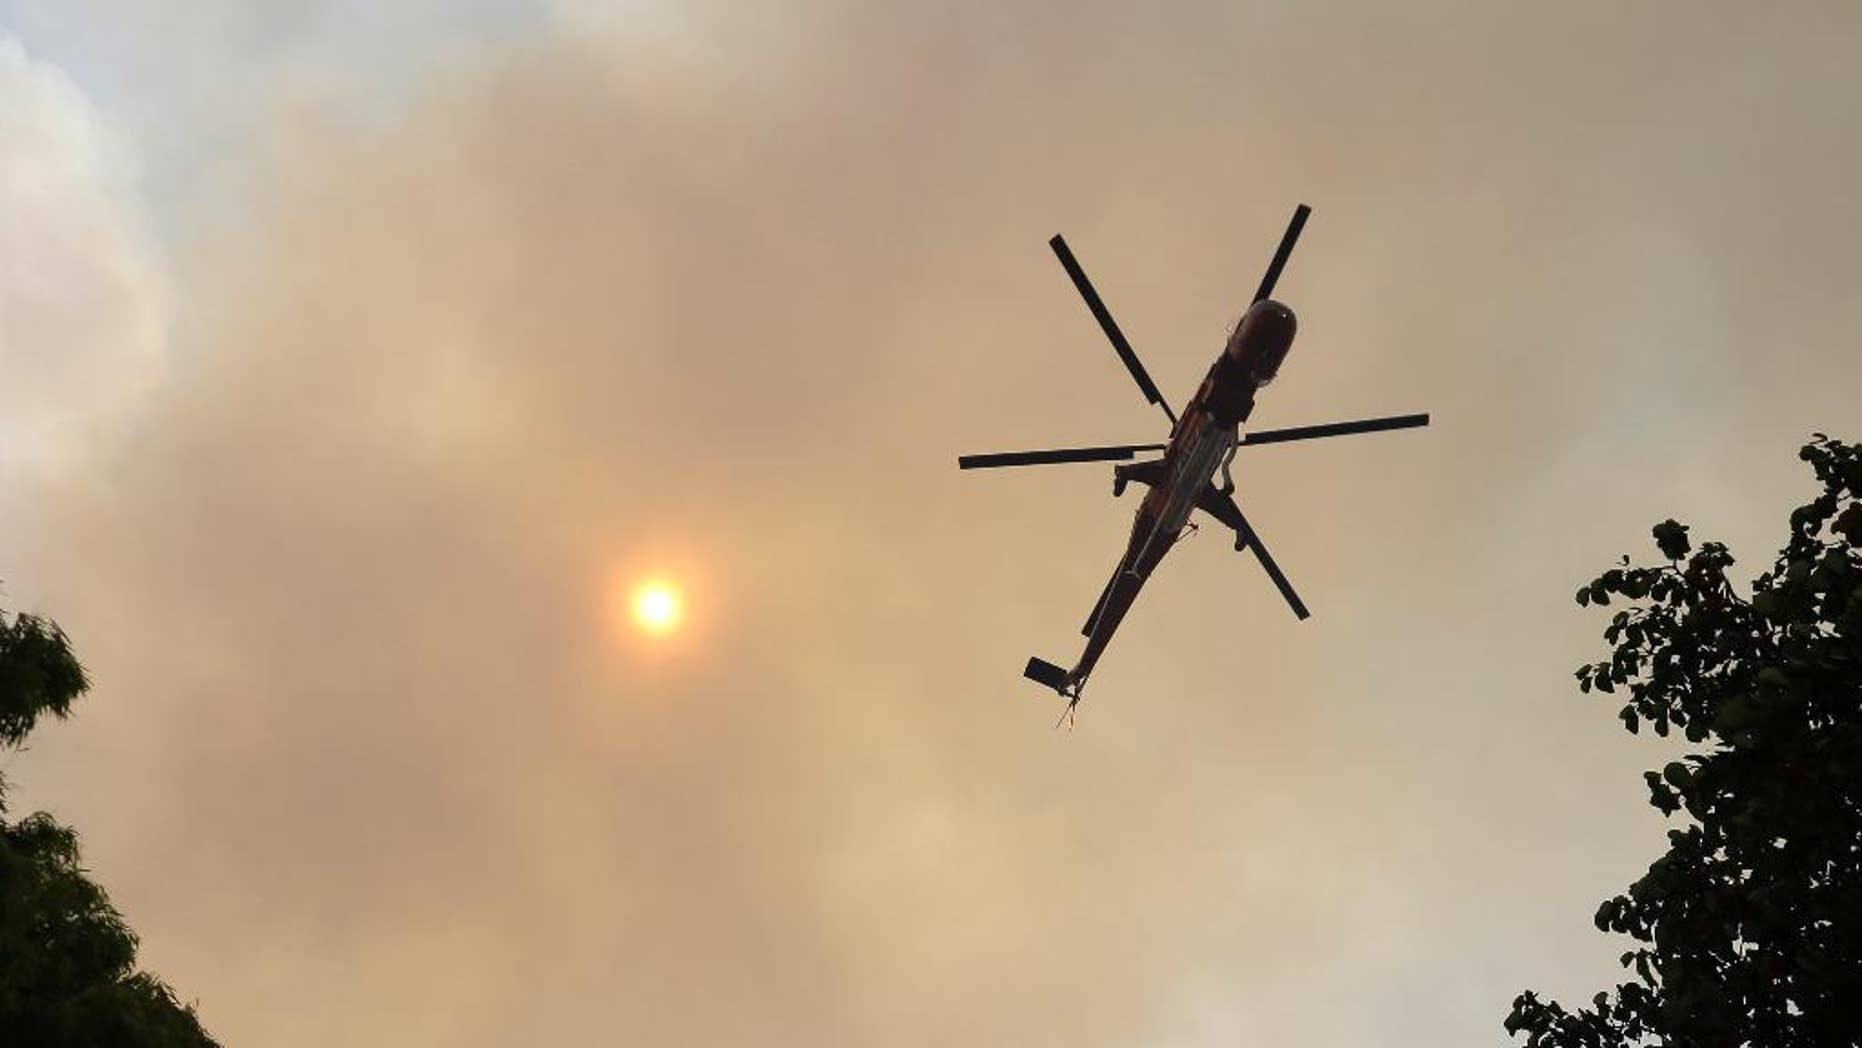 An helicopter flies over a forest at the village of Limni on the island of Evia, about 160 kilometers (100 miles) north of Athens, Monday, Aug. 1, 2016. Nearly 200 firemen, assisted by water-dropping aircraft, fire engines and volunteers, are fighting a large forest fire that has raged through the Greek island of Evia for the past three days. (AP Photo/Thanassis Stavrakis)